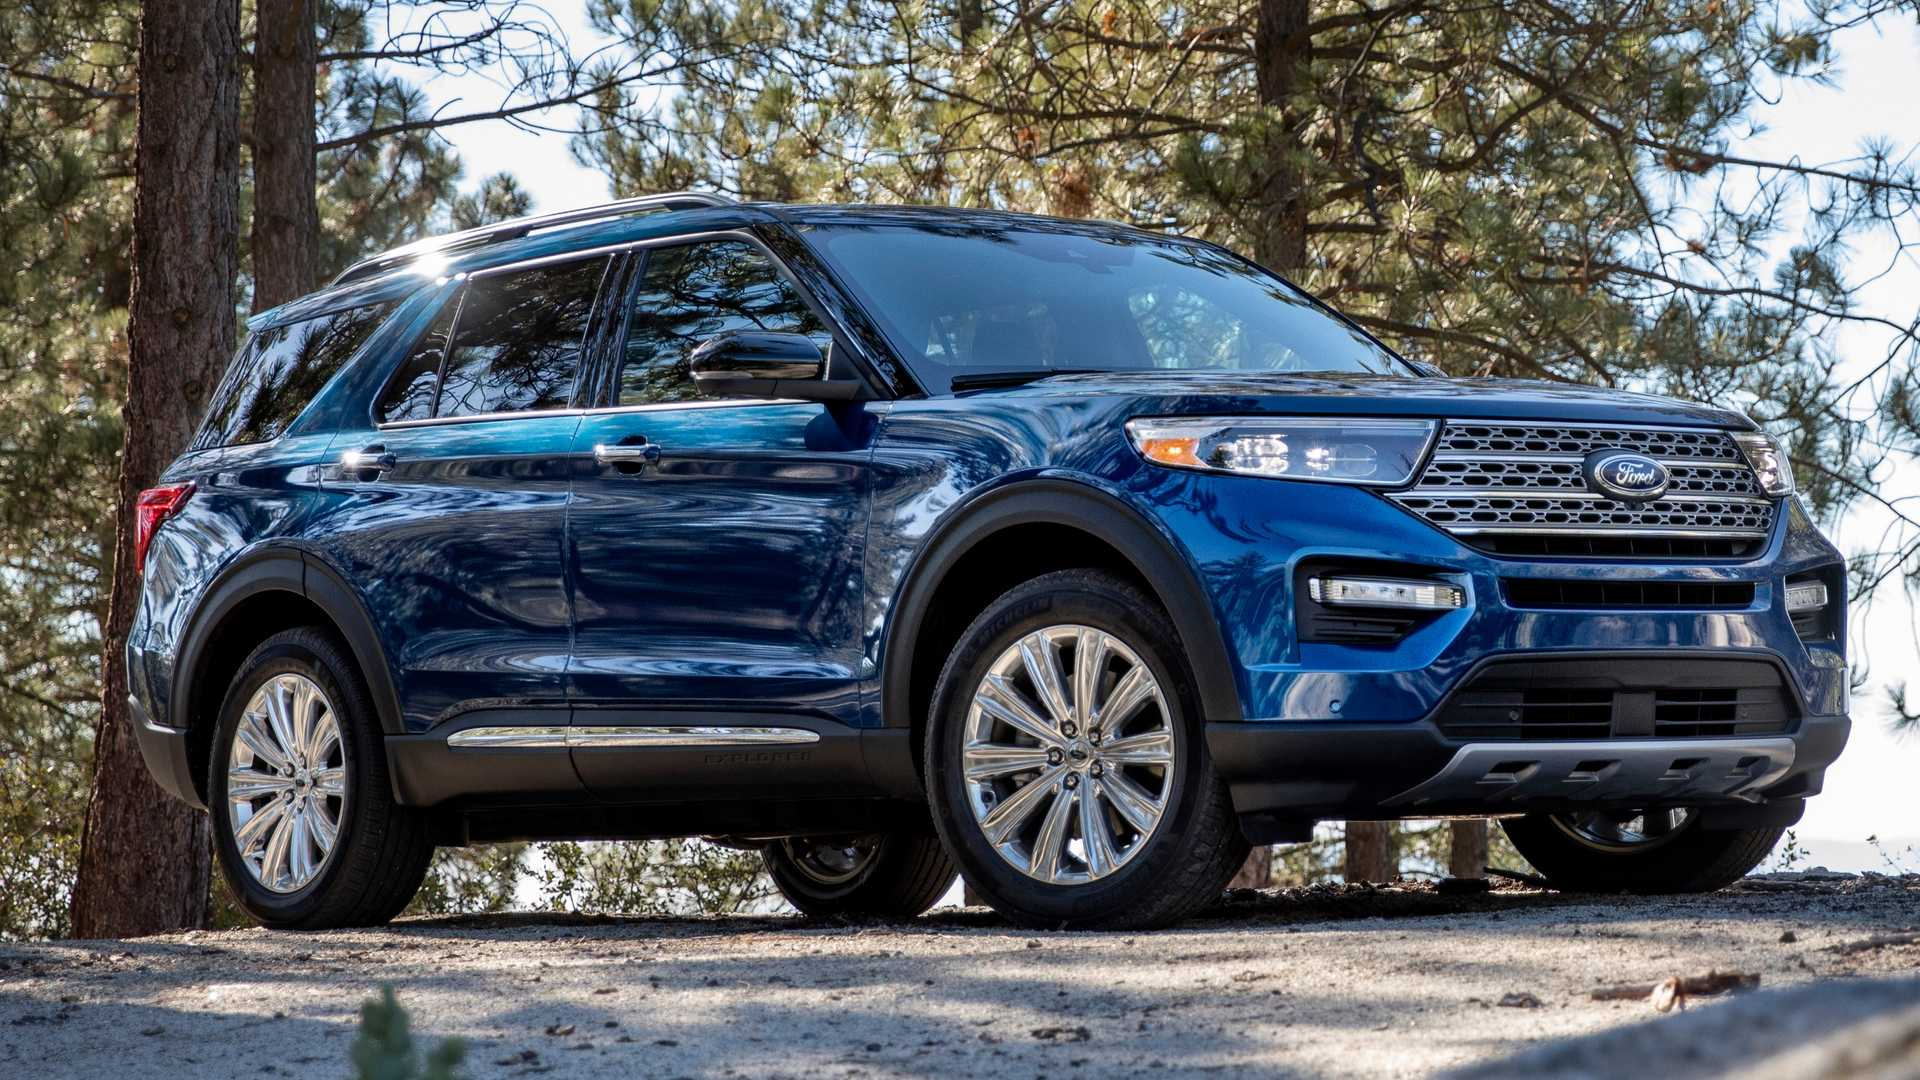 35 The Best When Can You Order A 2020 Ford Explorer Wallpaper